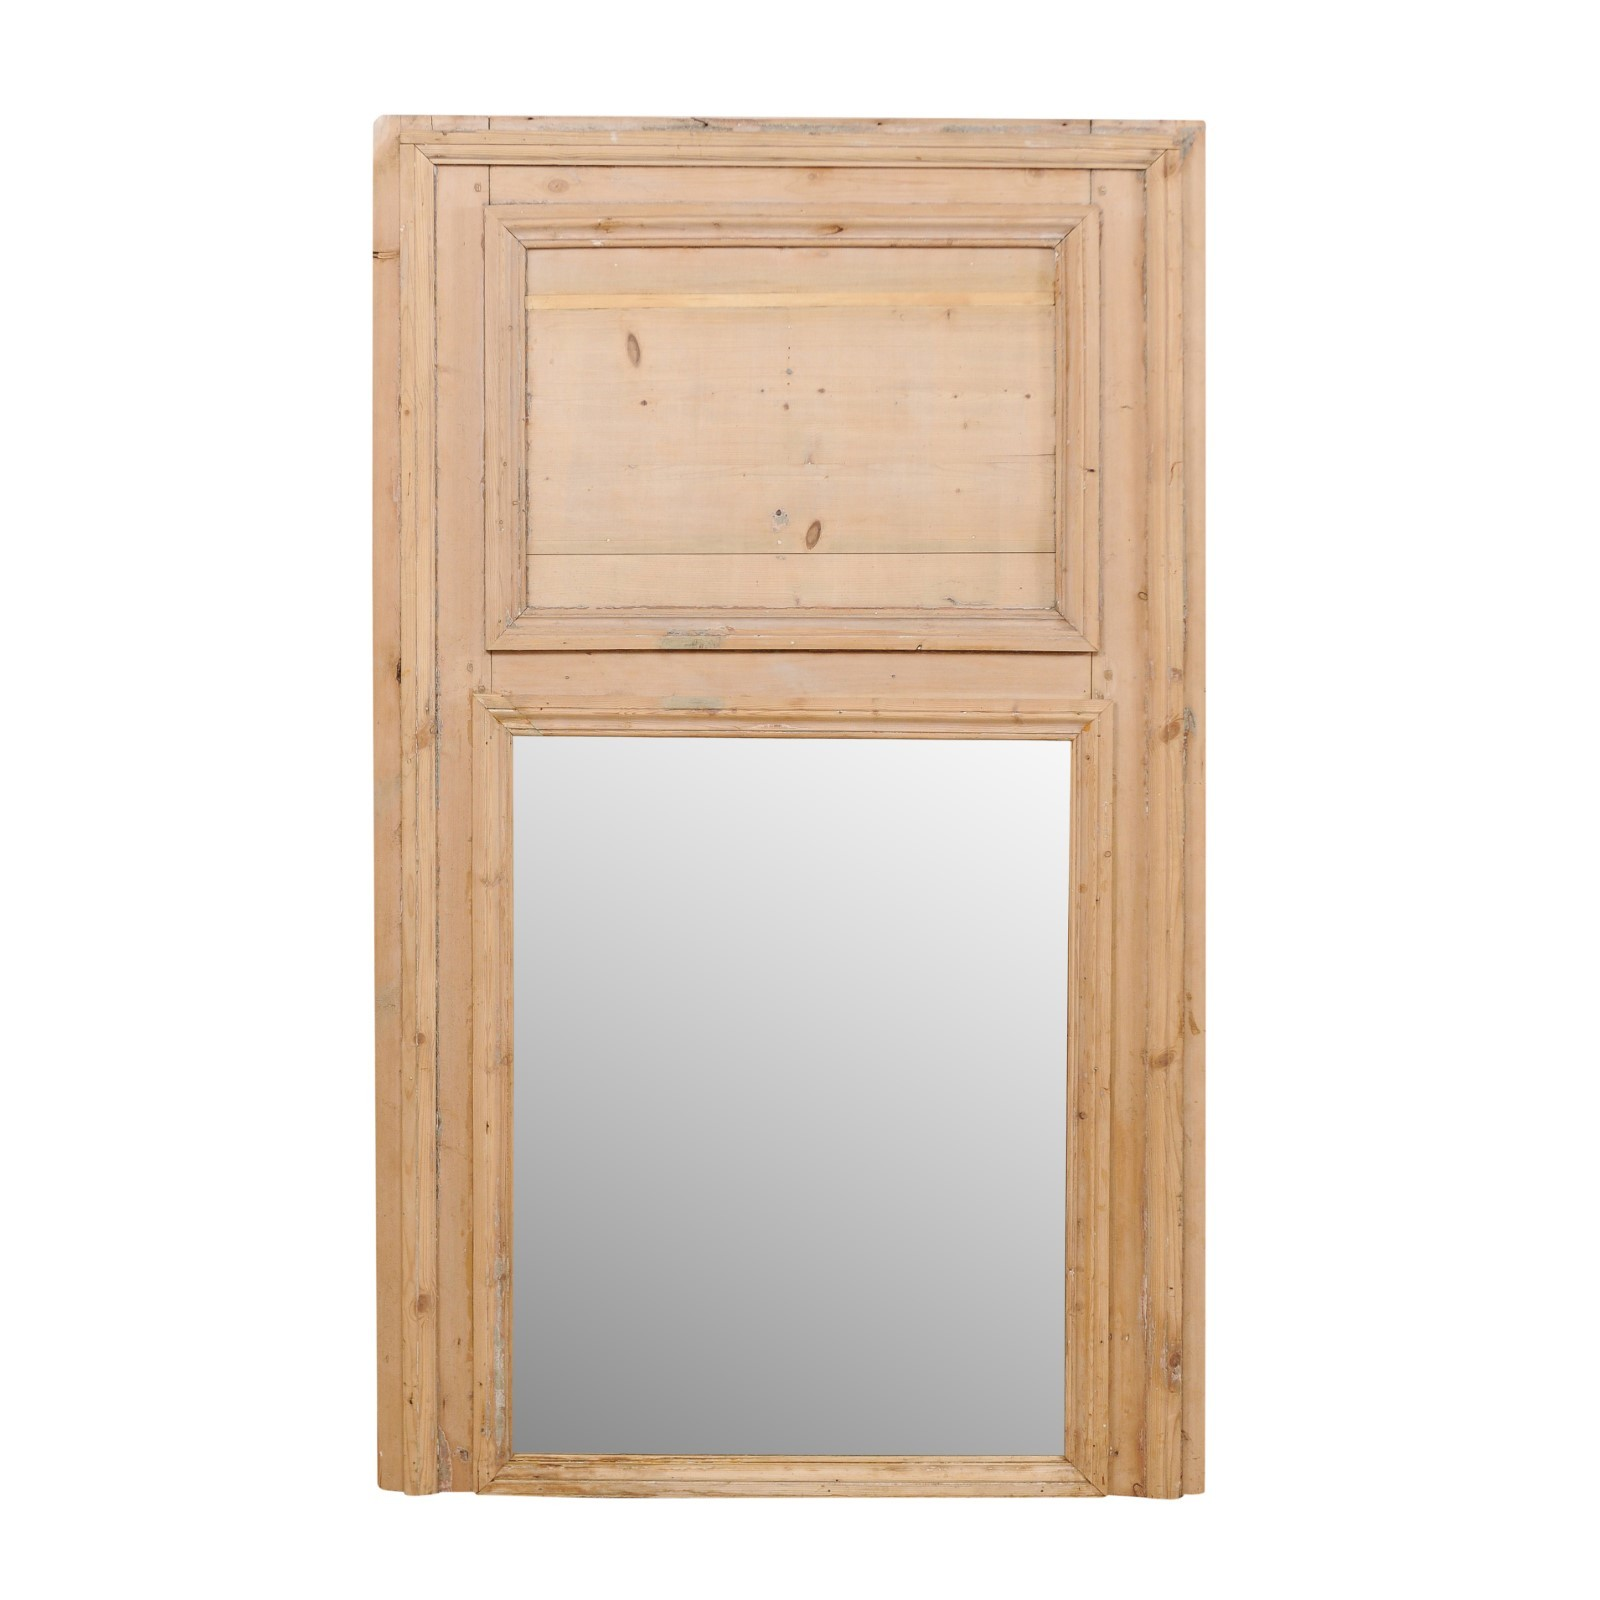 French Natural Wood Mirror, 19th C